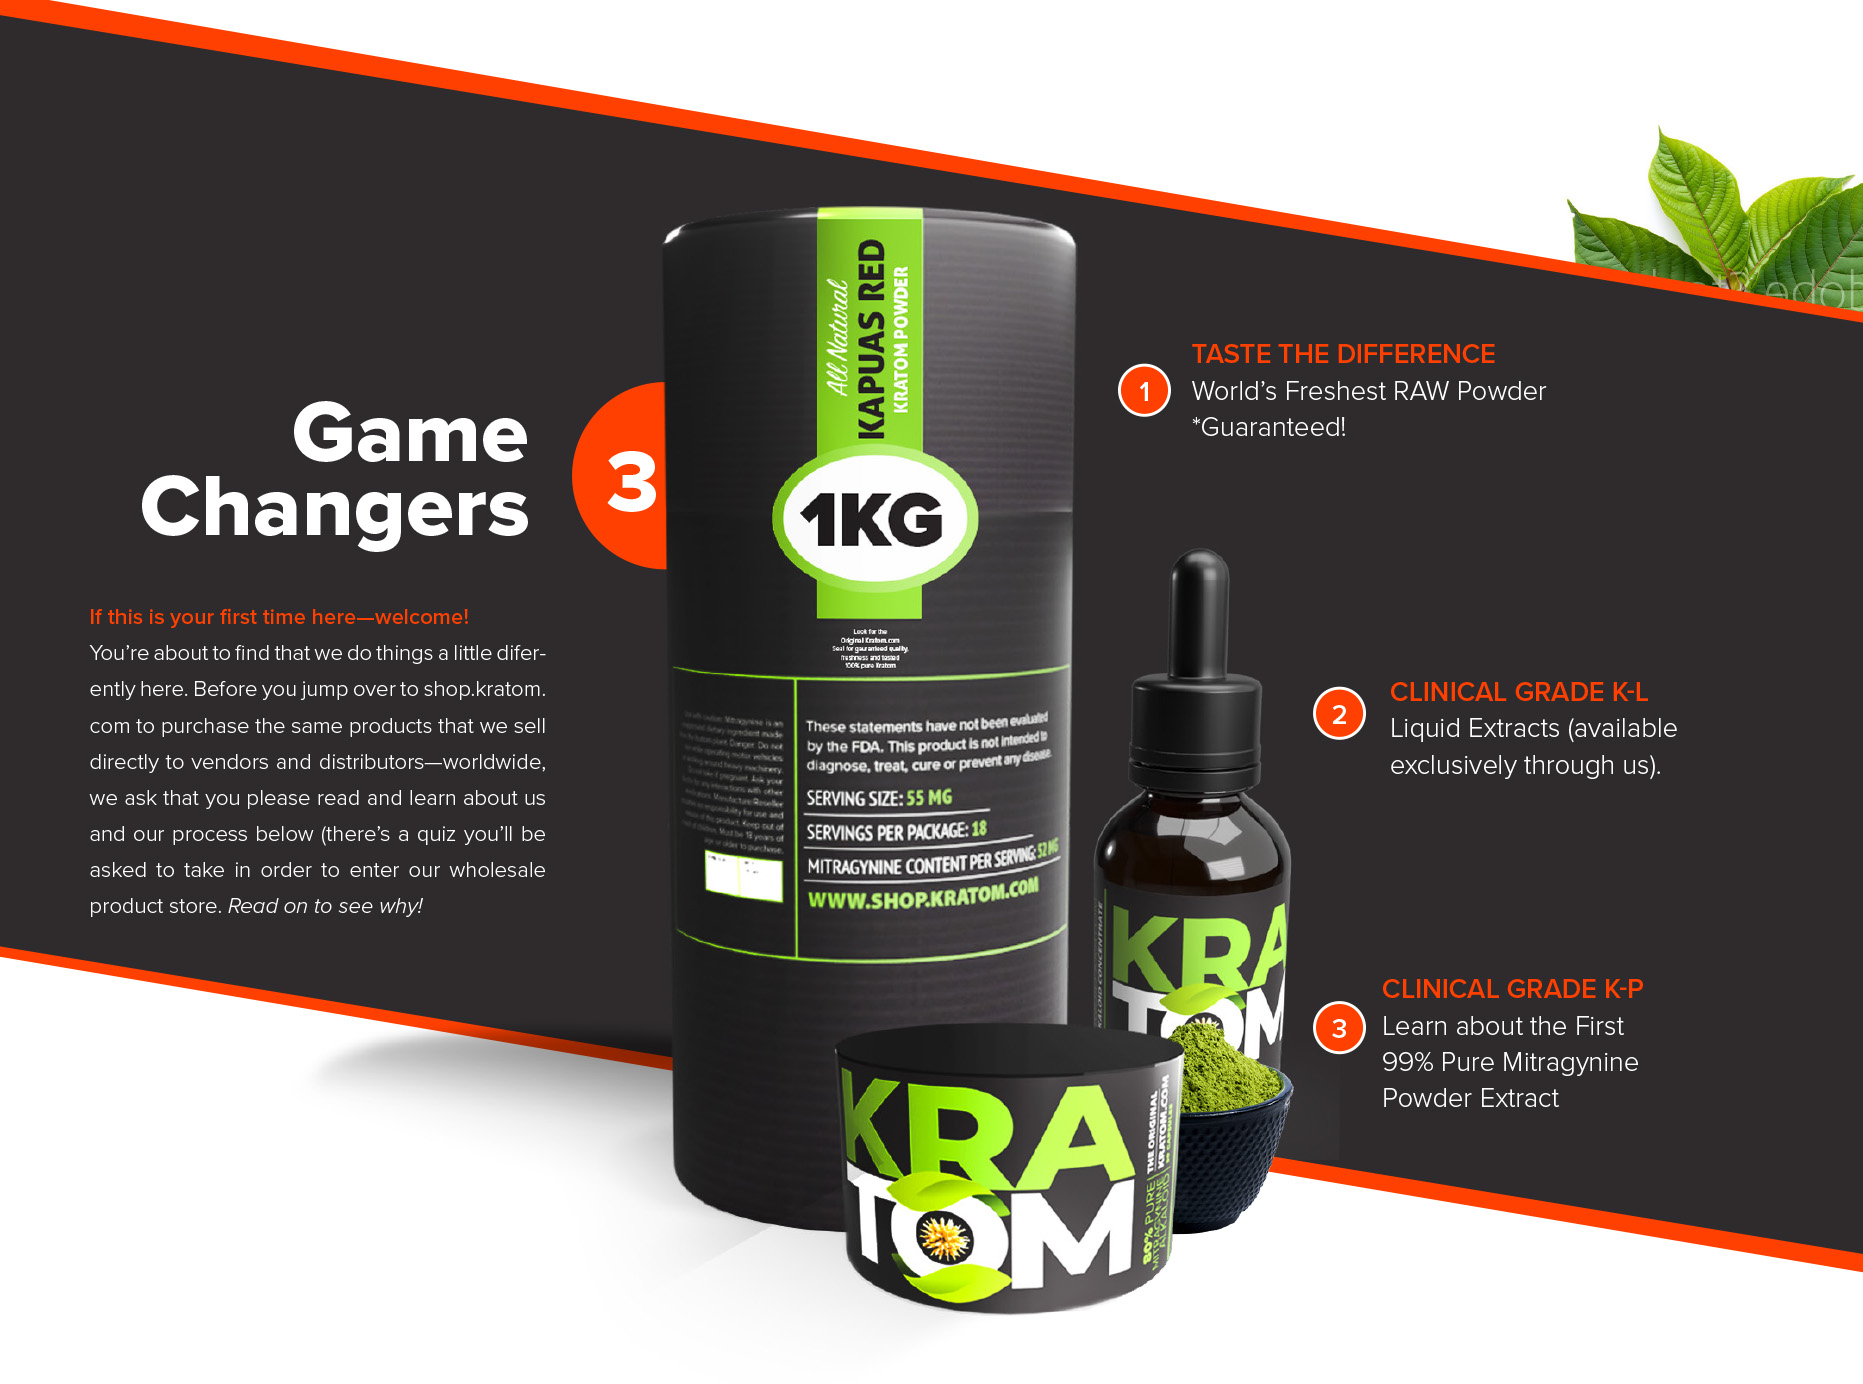 Kratom.com has been a leader in the industry for the past 20 years, introducing some of the highest yielding Kratom extracts along with Maeng Da ( the world's most popular Kratom Powder brand) and Bali Premium